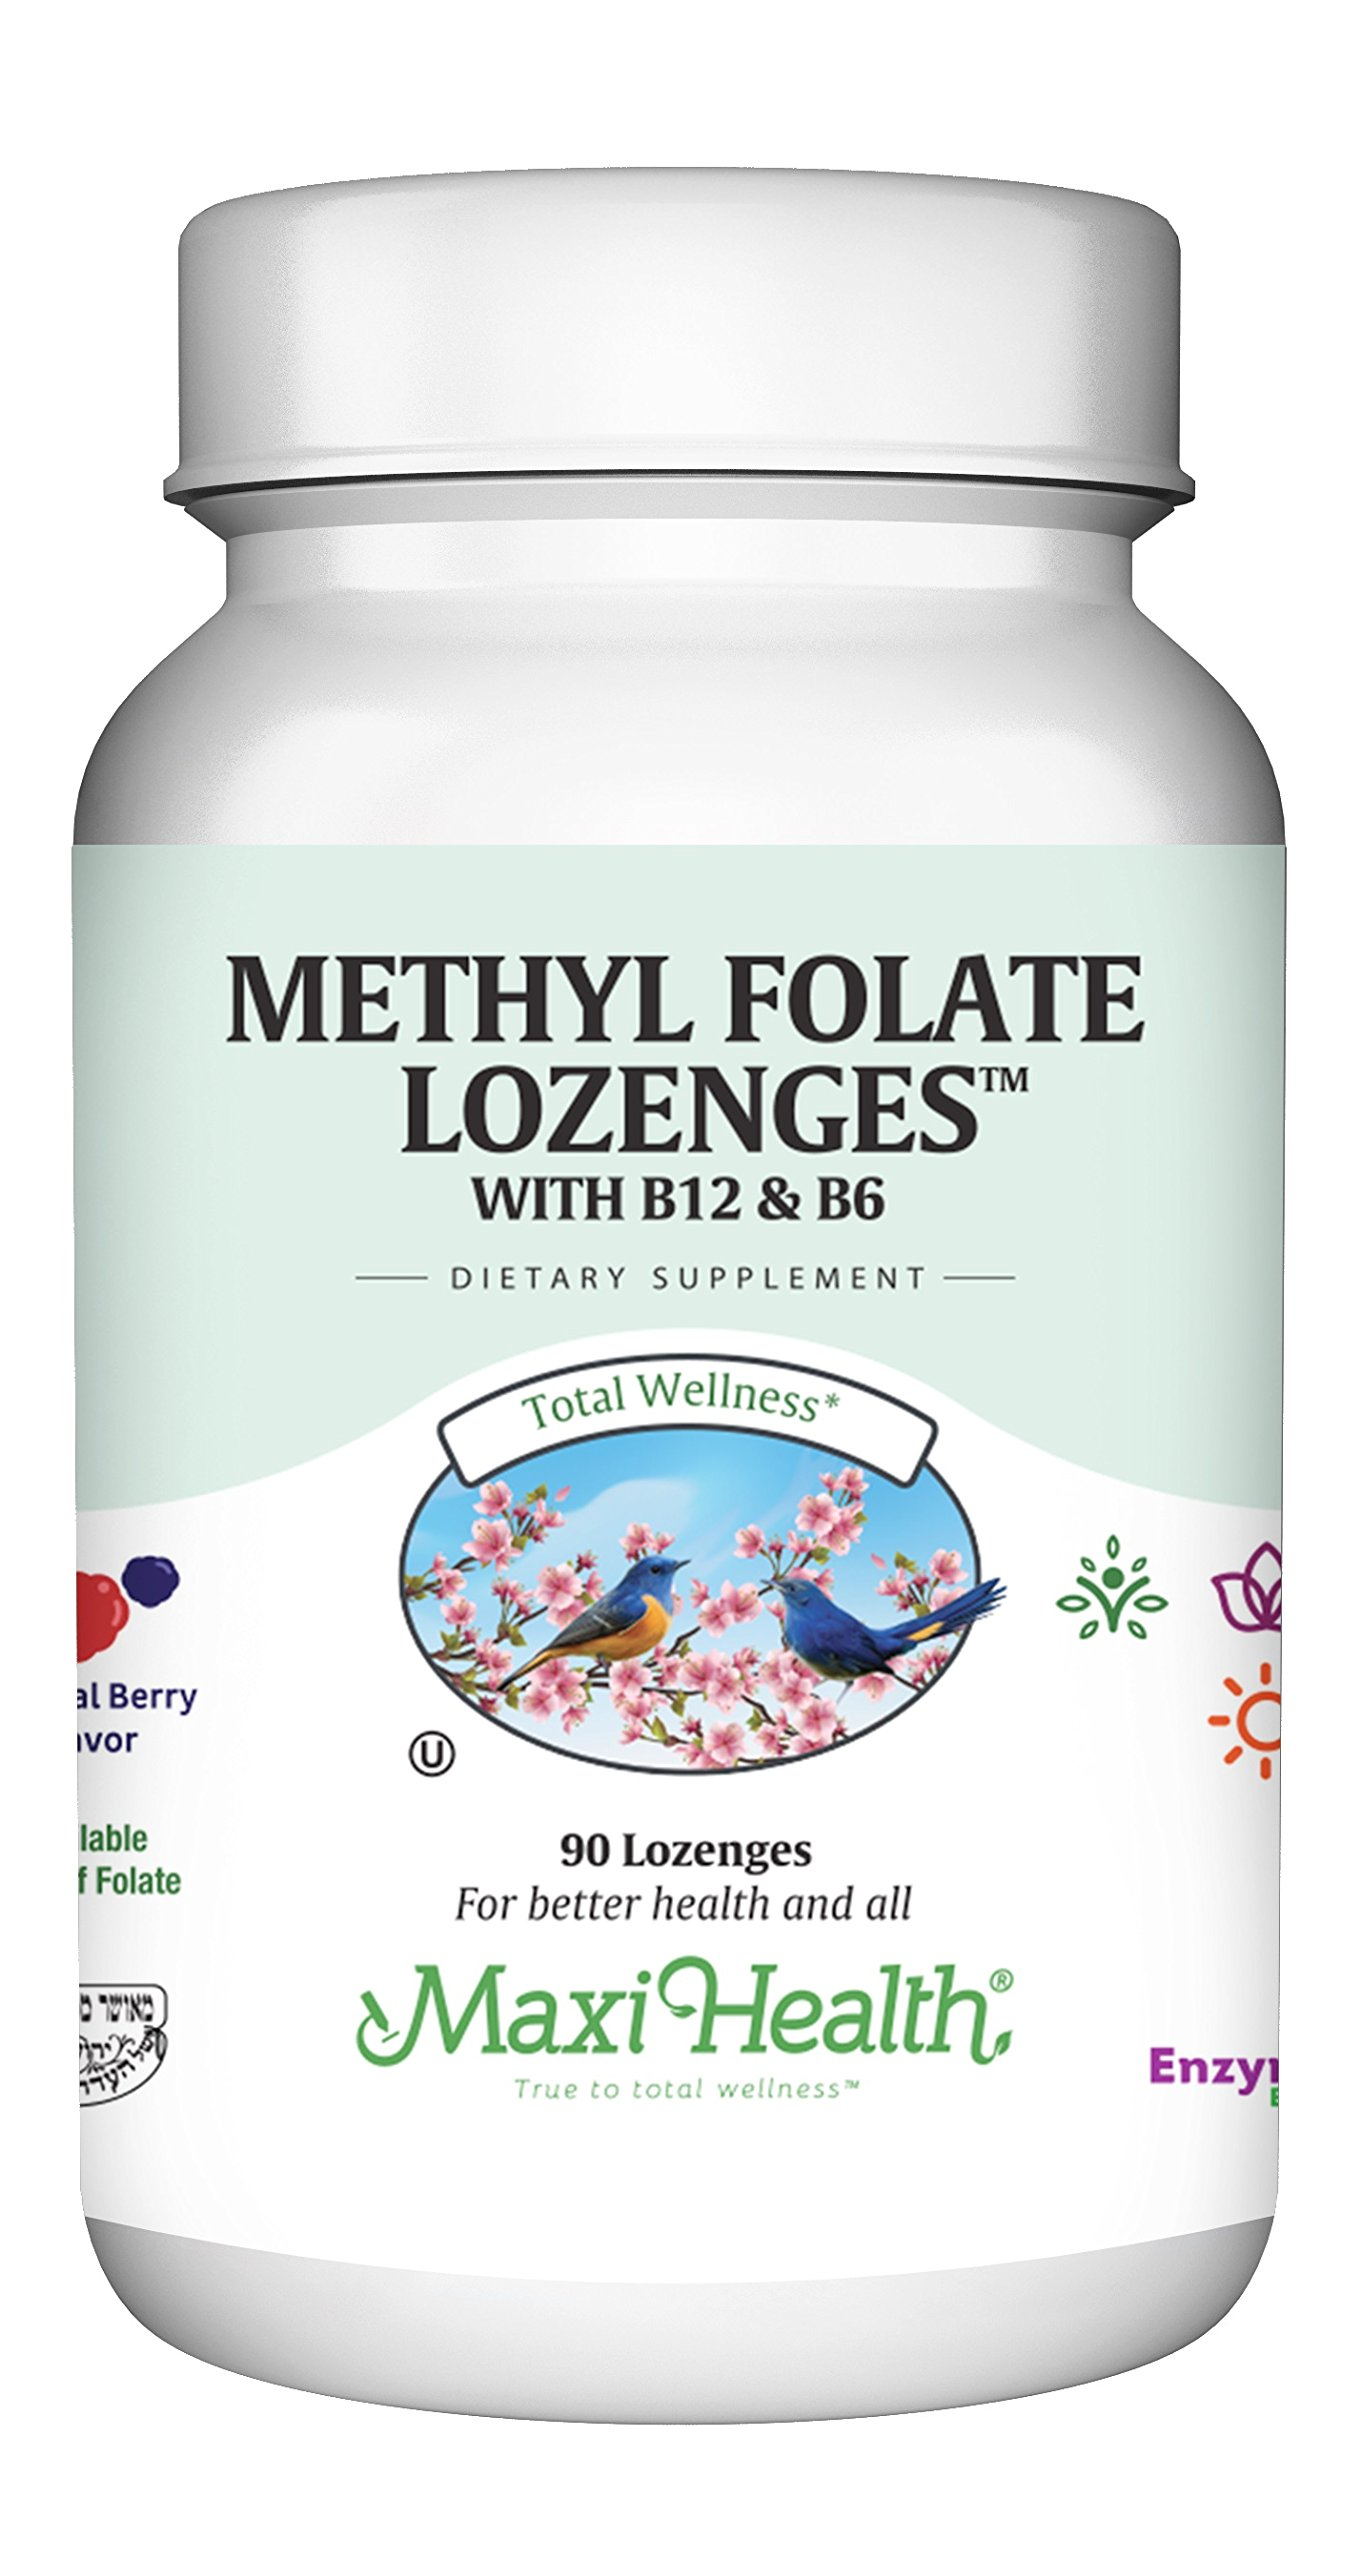 Methyl Folate Lozenges with B12 & B6, Berry Flavored - Memory, Cardiovascular Health Hormone & Immune Support - Gluten Free, Kosher